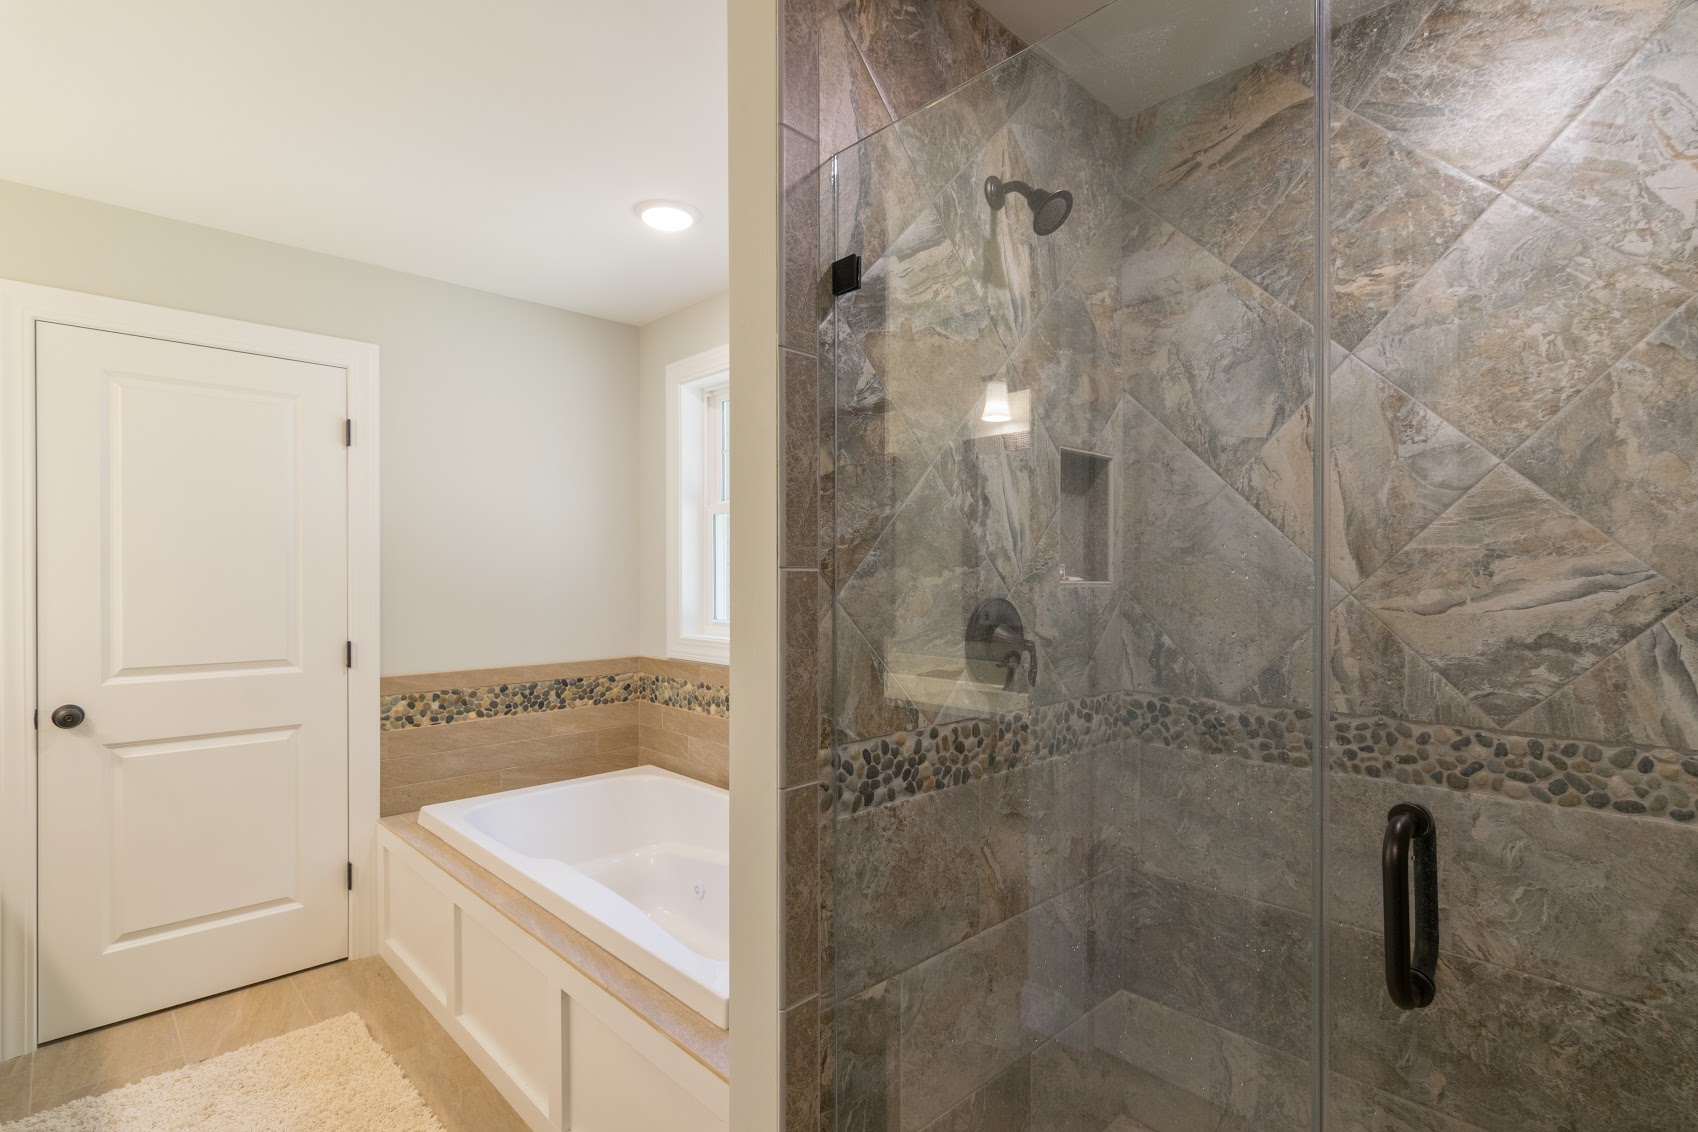 http://www.blackrockus.com/wp-content/uploads/2017/12/Brigham-Heights-Bathroom-Shower.jpg